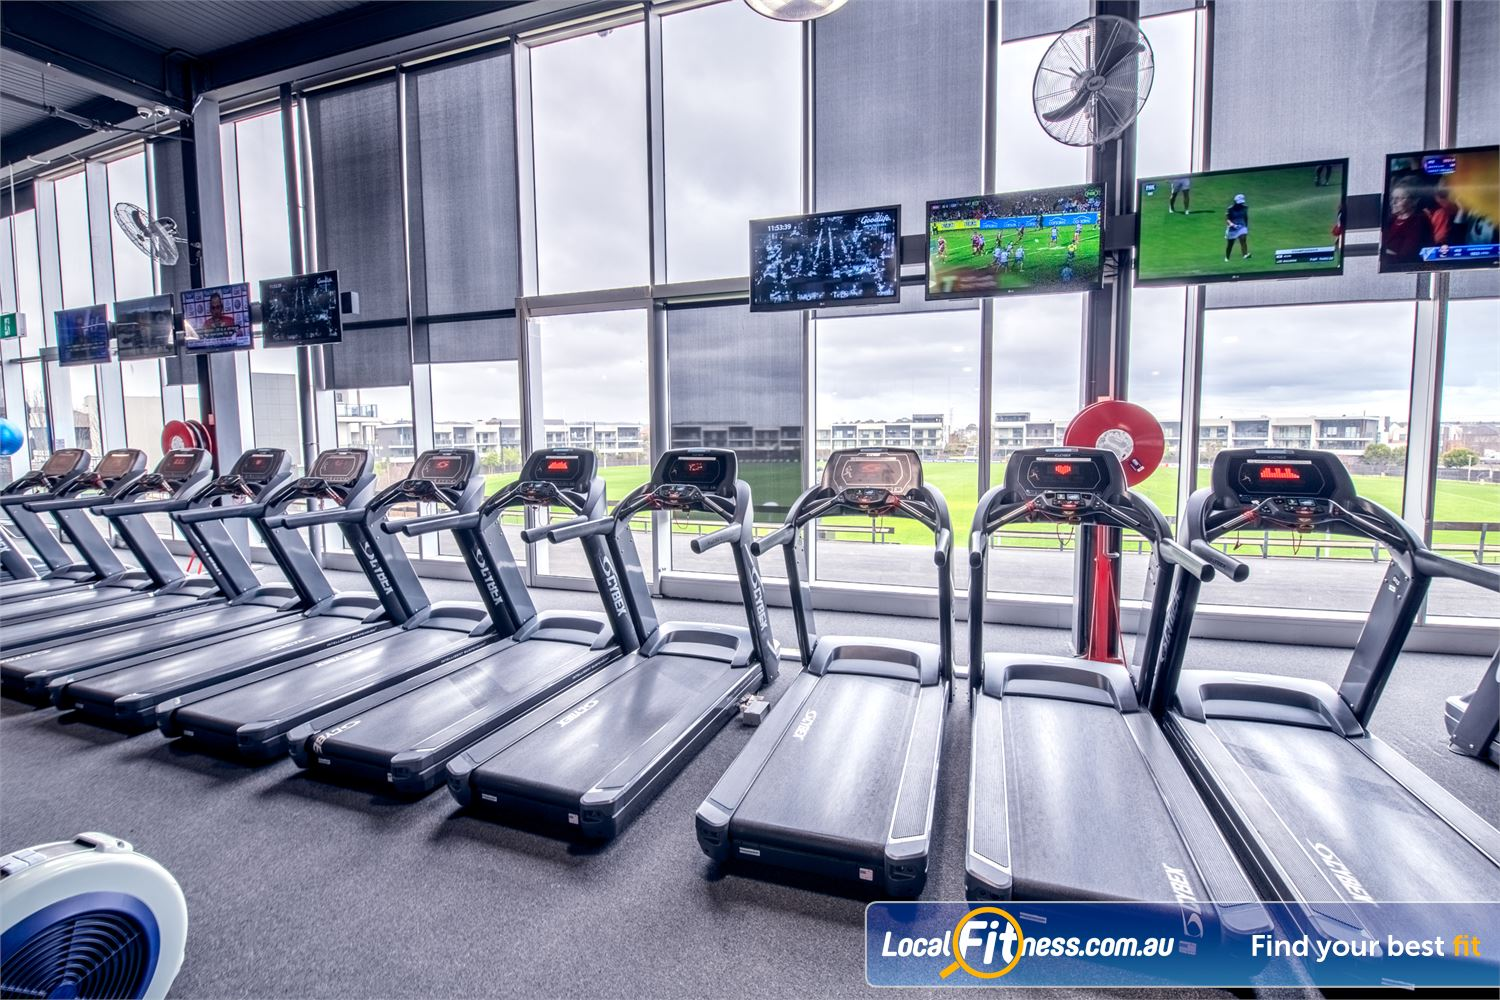 Goodlife Health Clubs Waverley Park Near Noble Park North Watch your favorite shows while training on our state of the art treadmills.